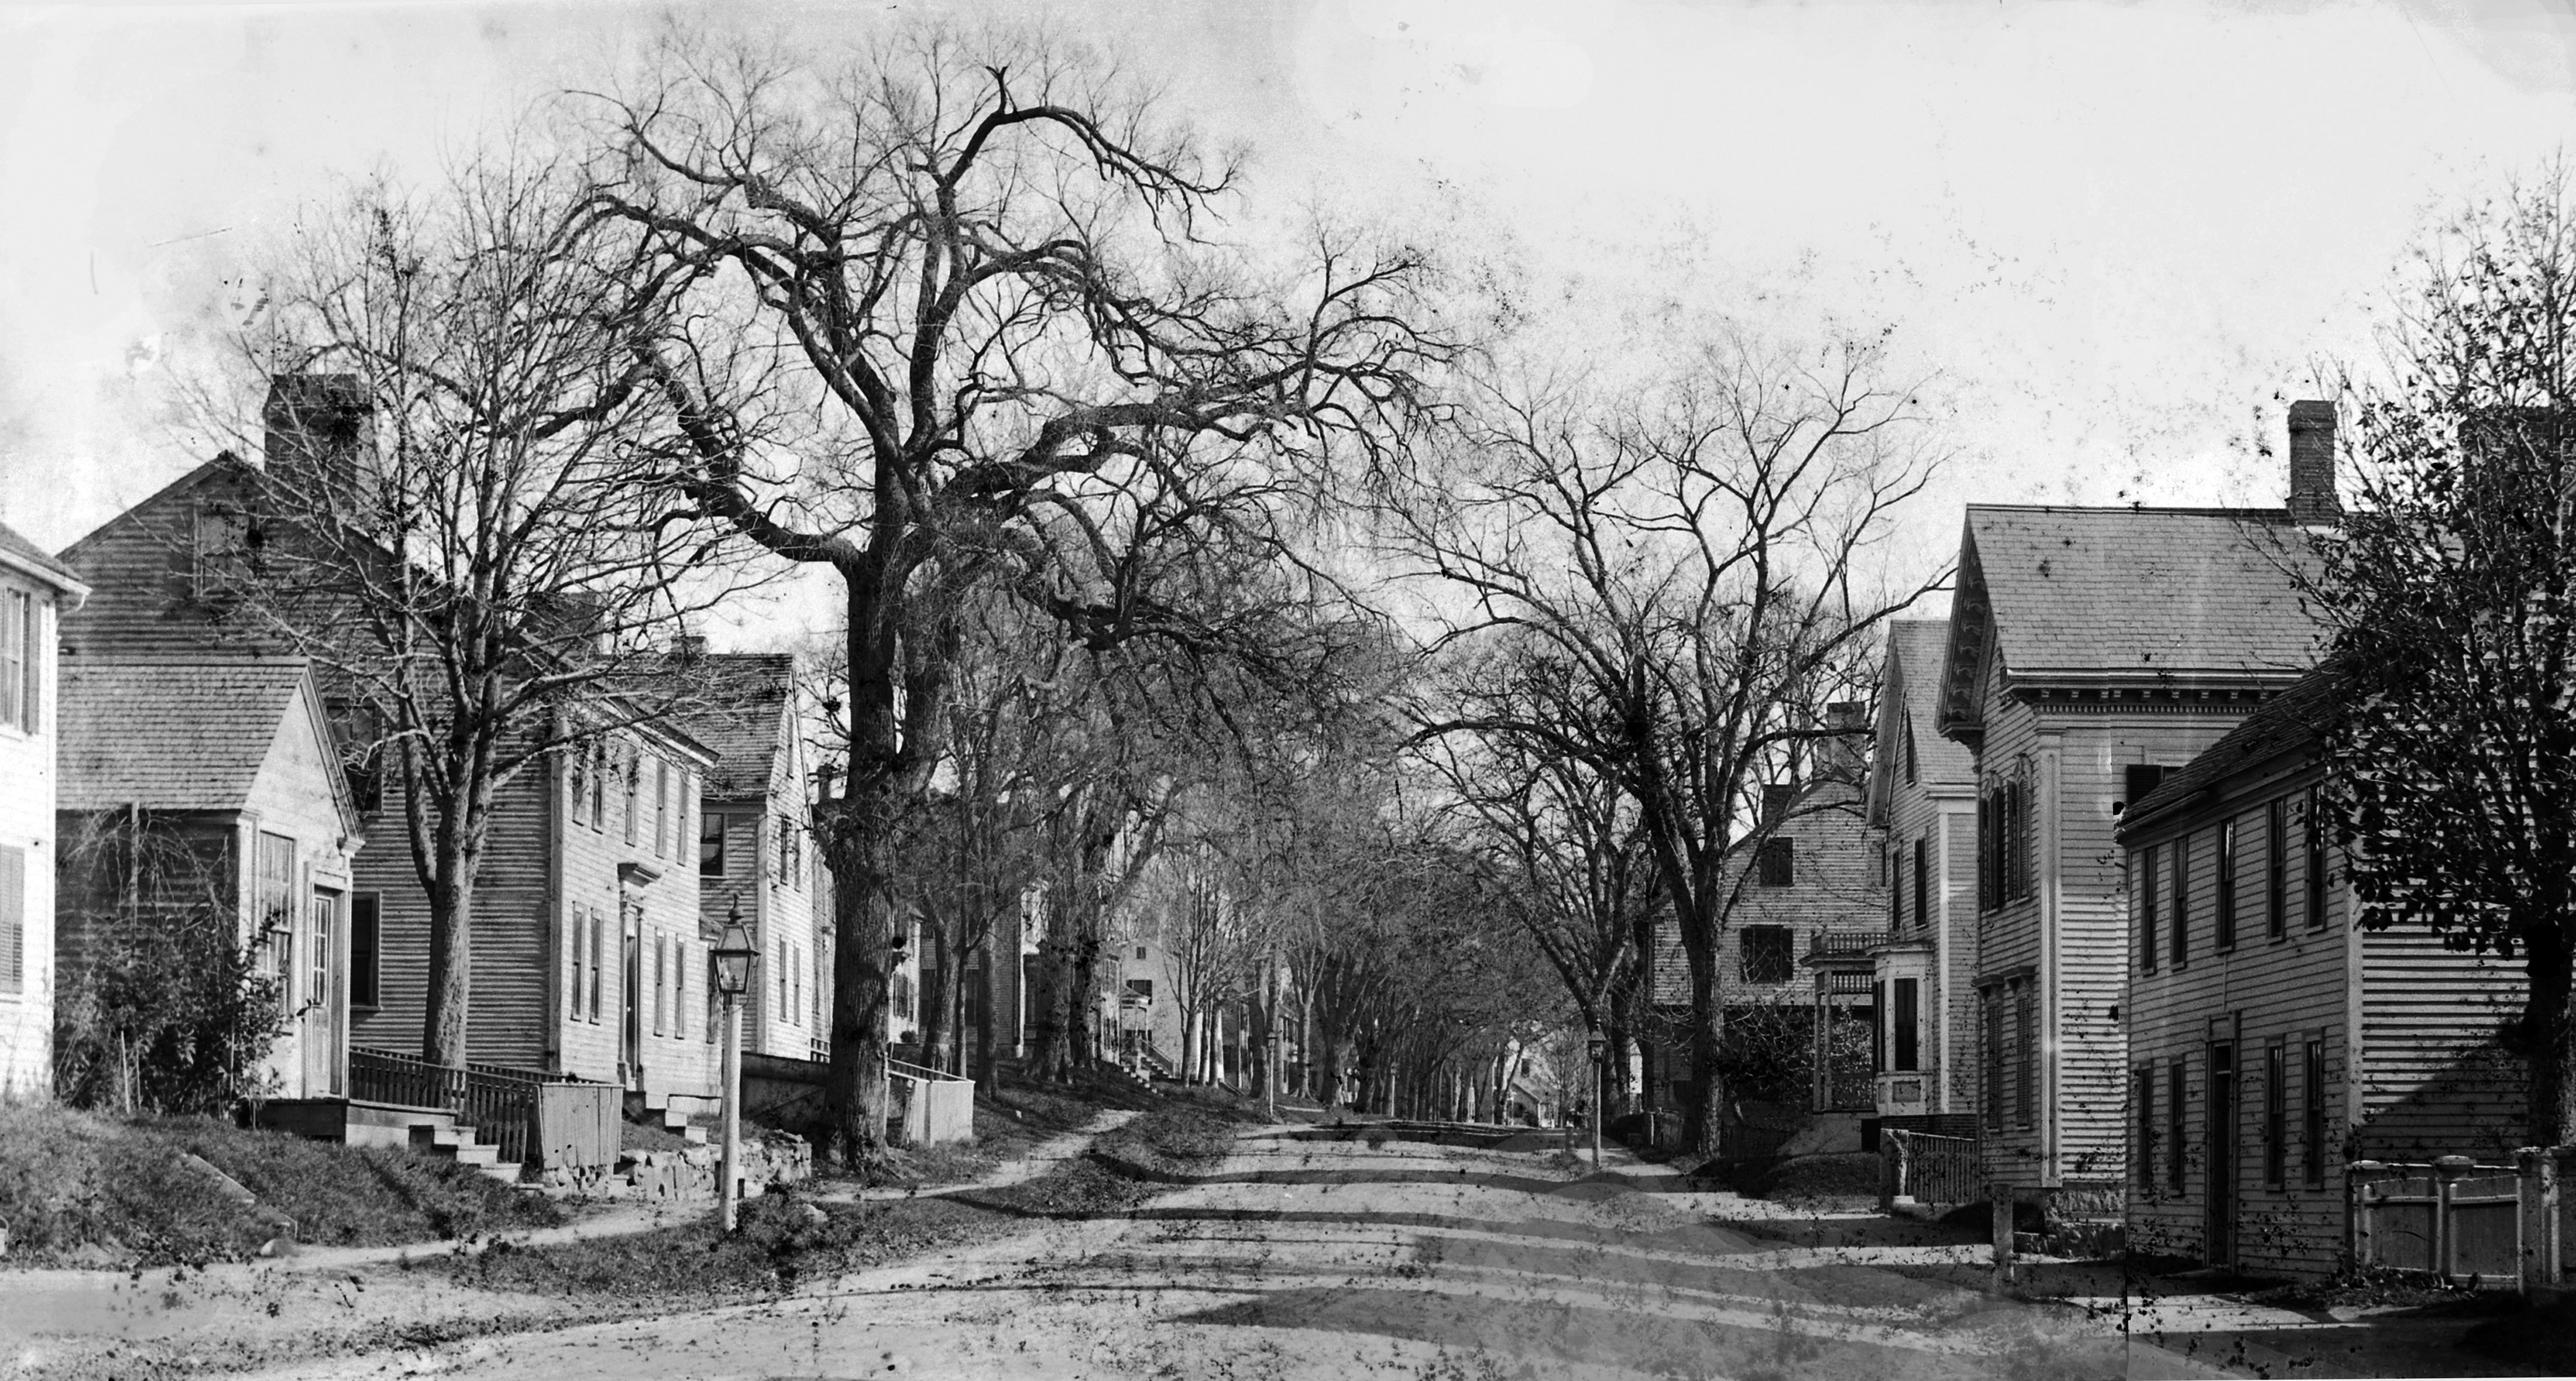 High Street in the 19th Century